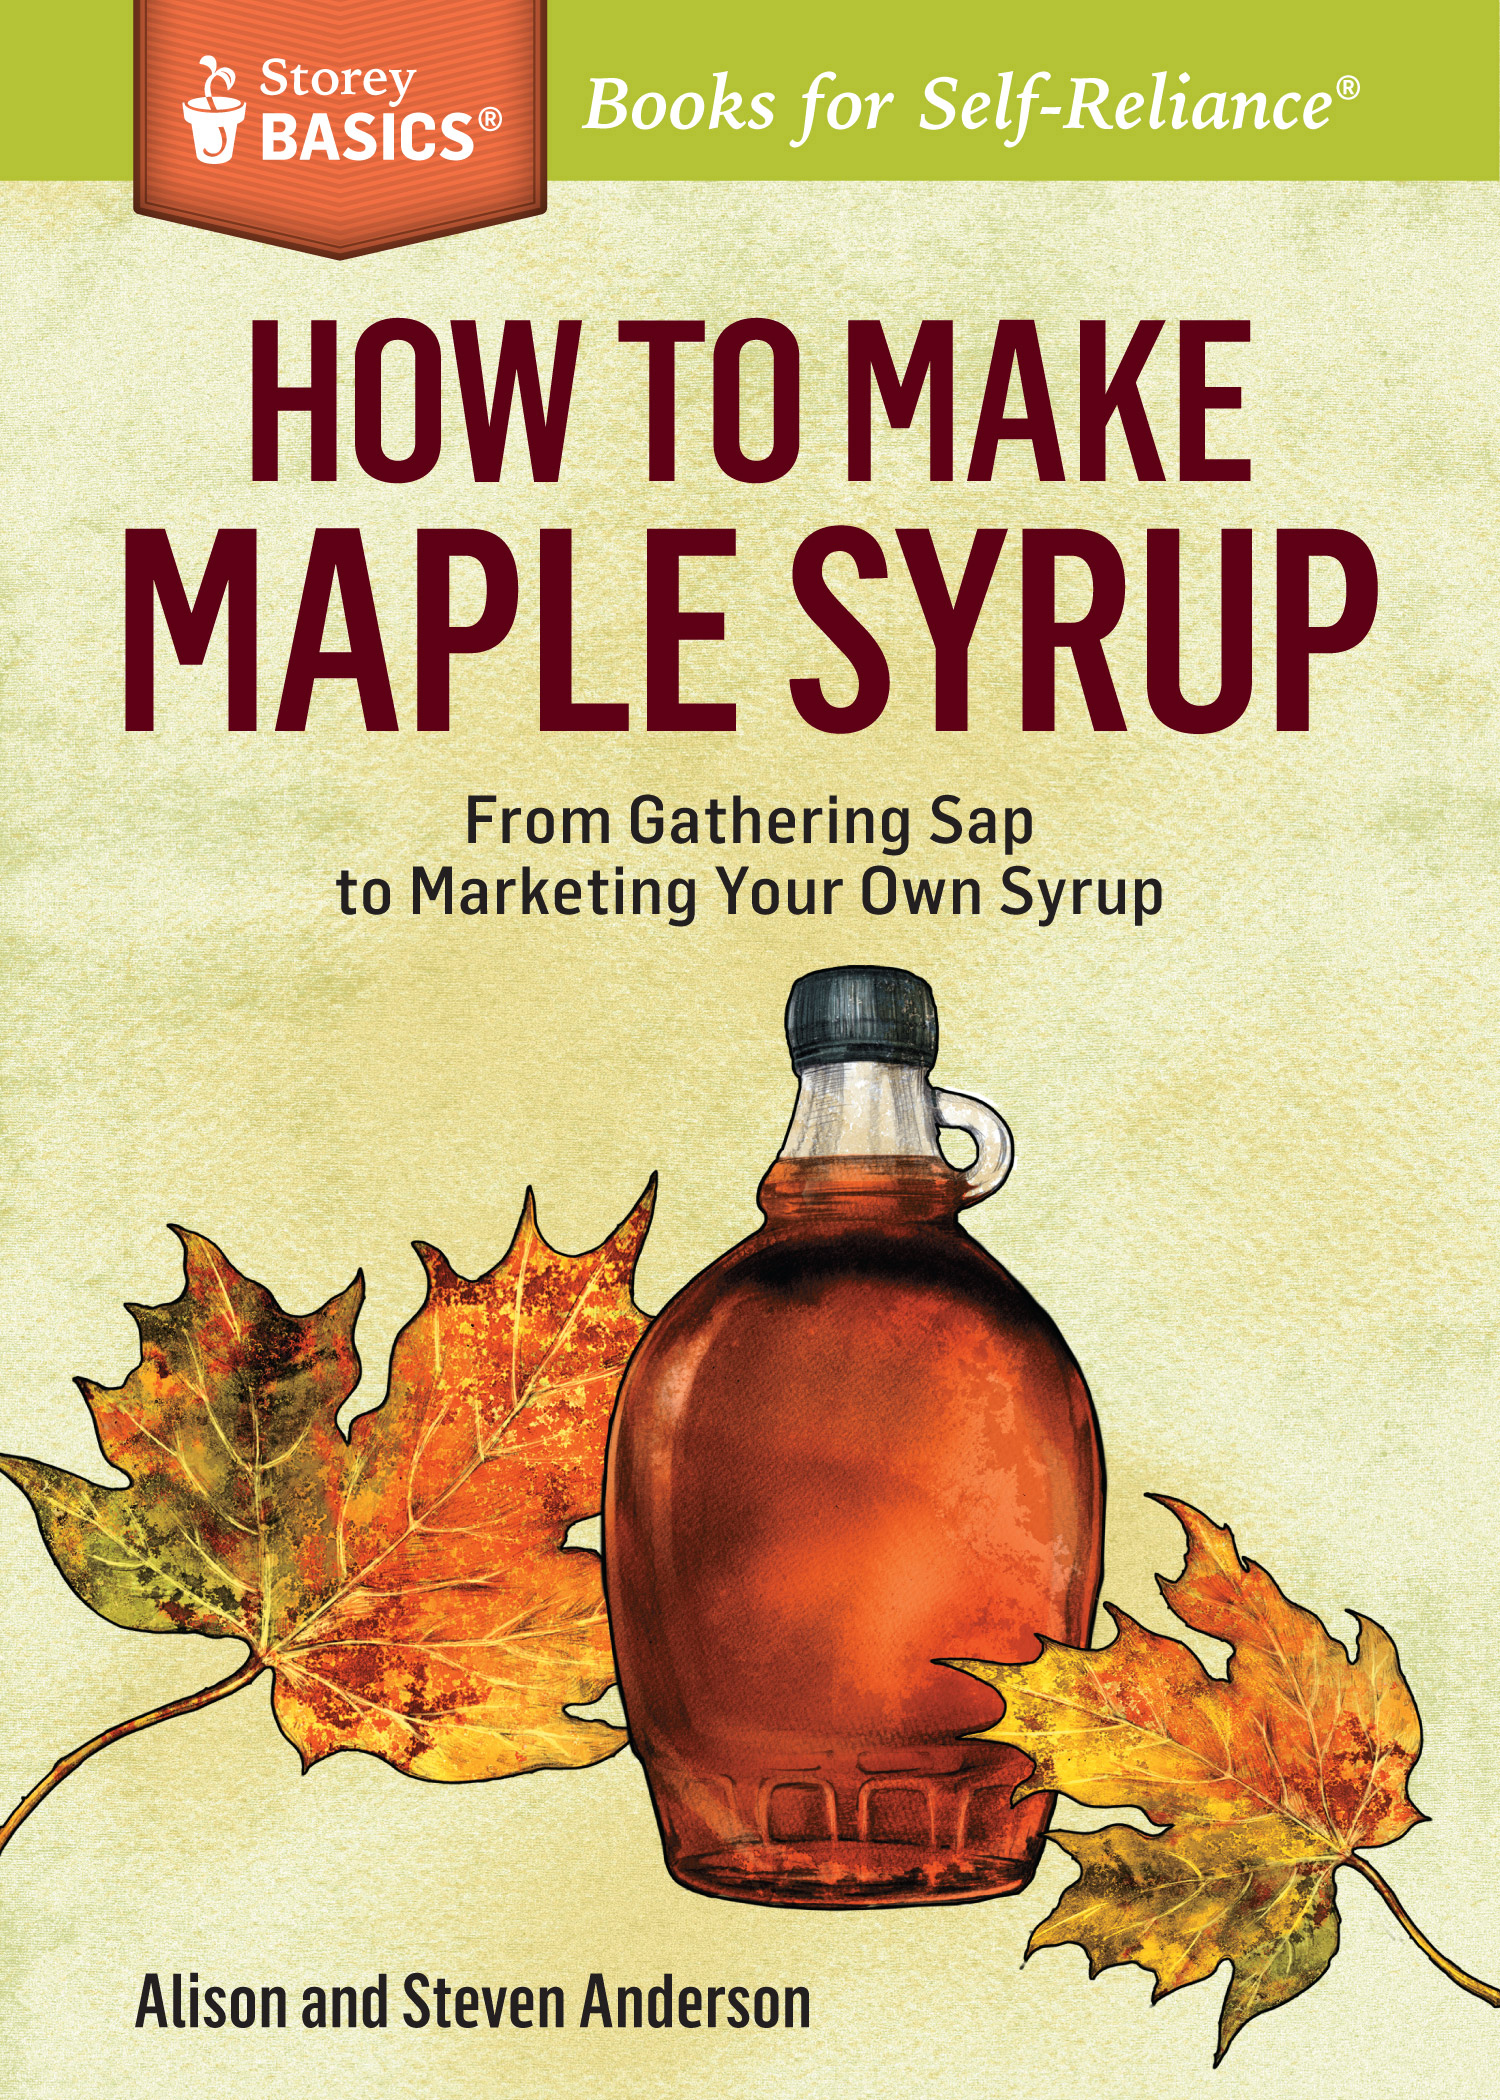 How to Make Maple Syrup From Gathering Sap to Marketing Your Own Syrup. A Storey BASICS® Title - Alison Anderson